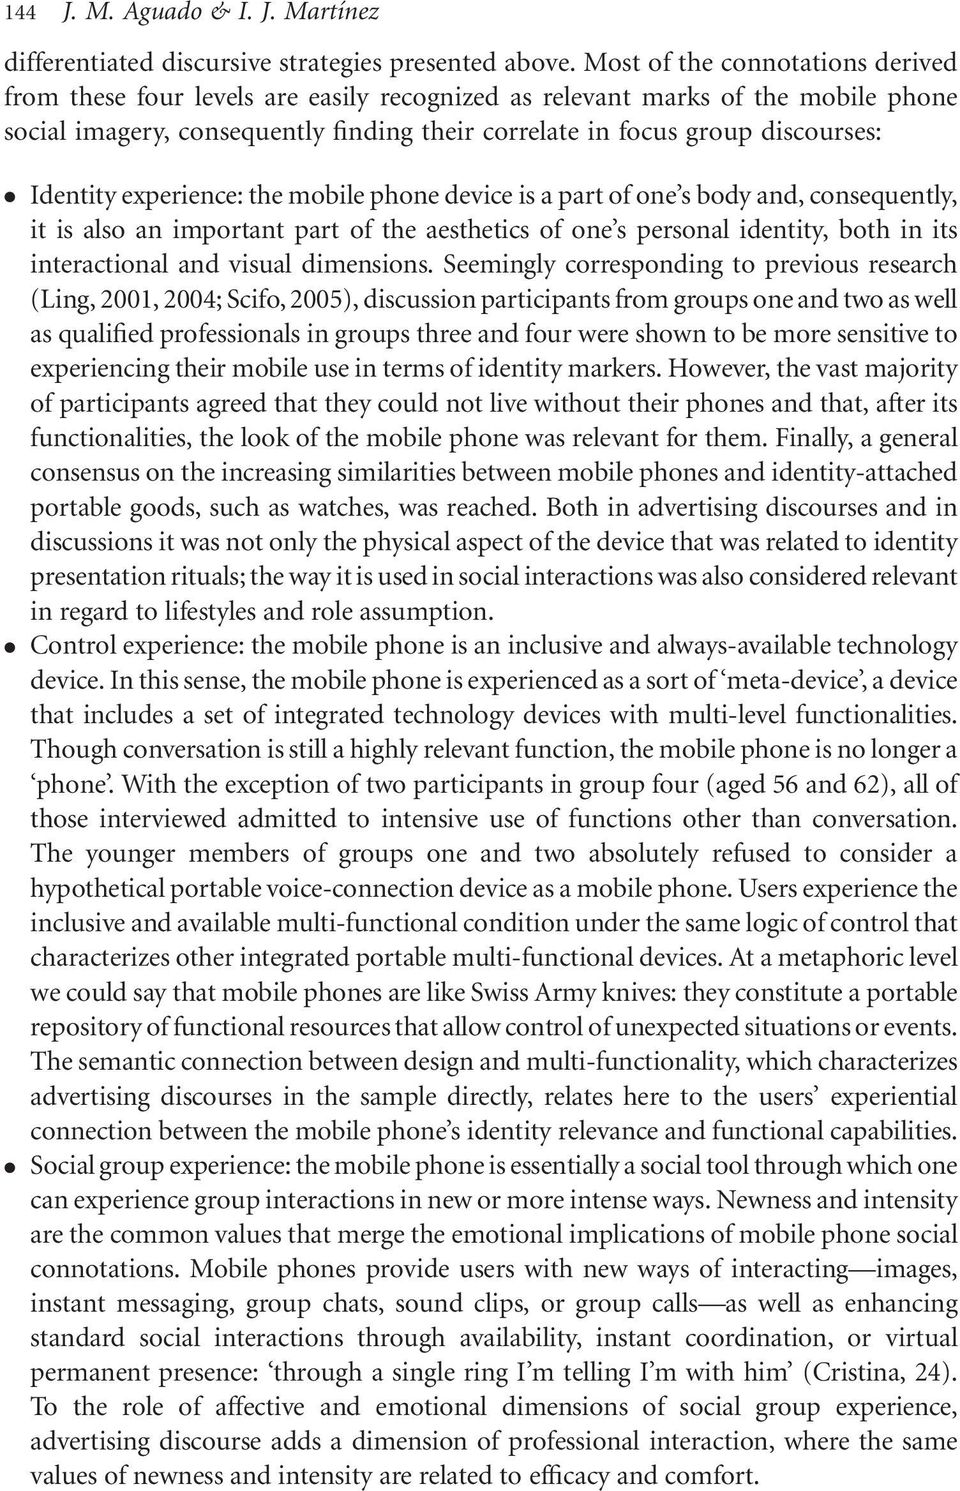 Identity experience: the mobile phone device is a part of one s body and, consequently, it is also an important part of the aesthetics of one s personal identity, both in its interactional and visual